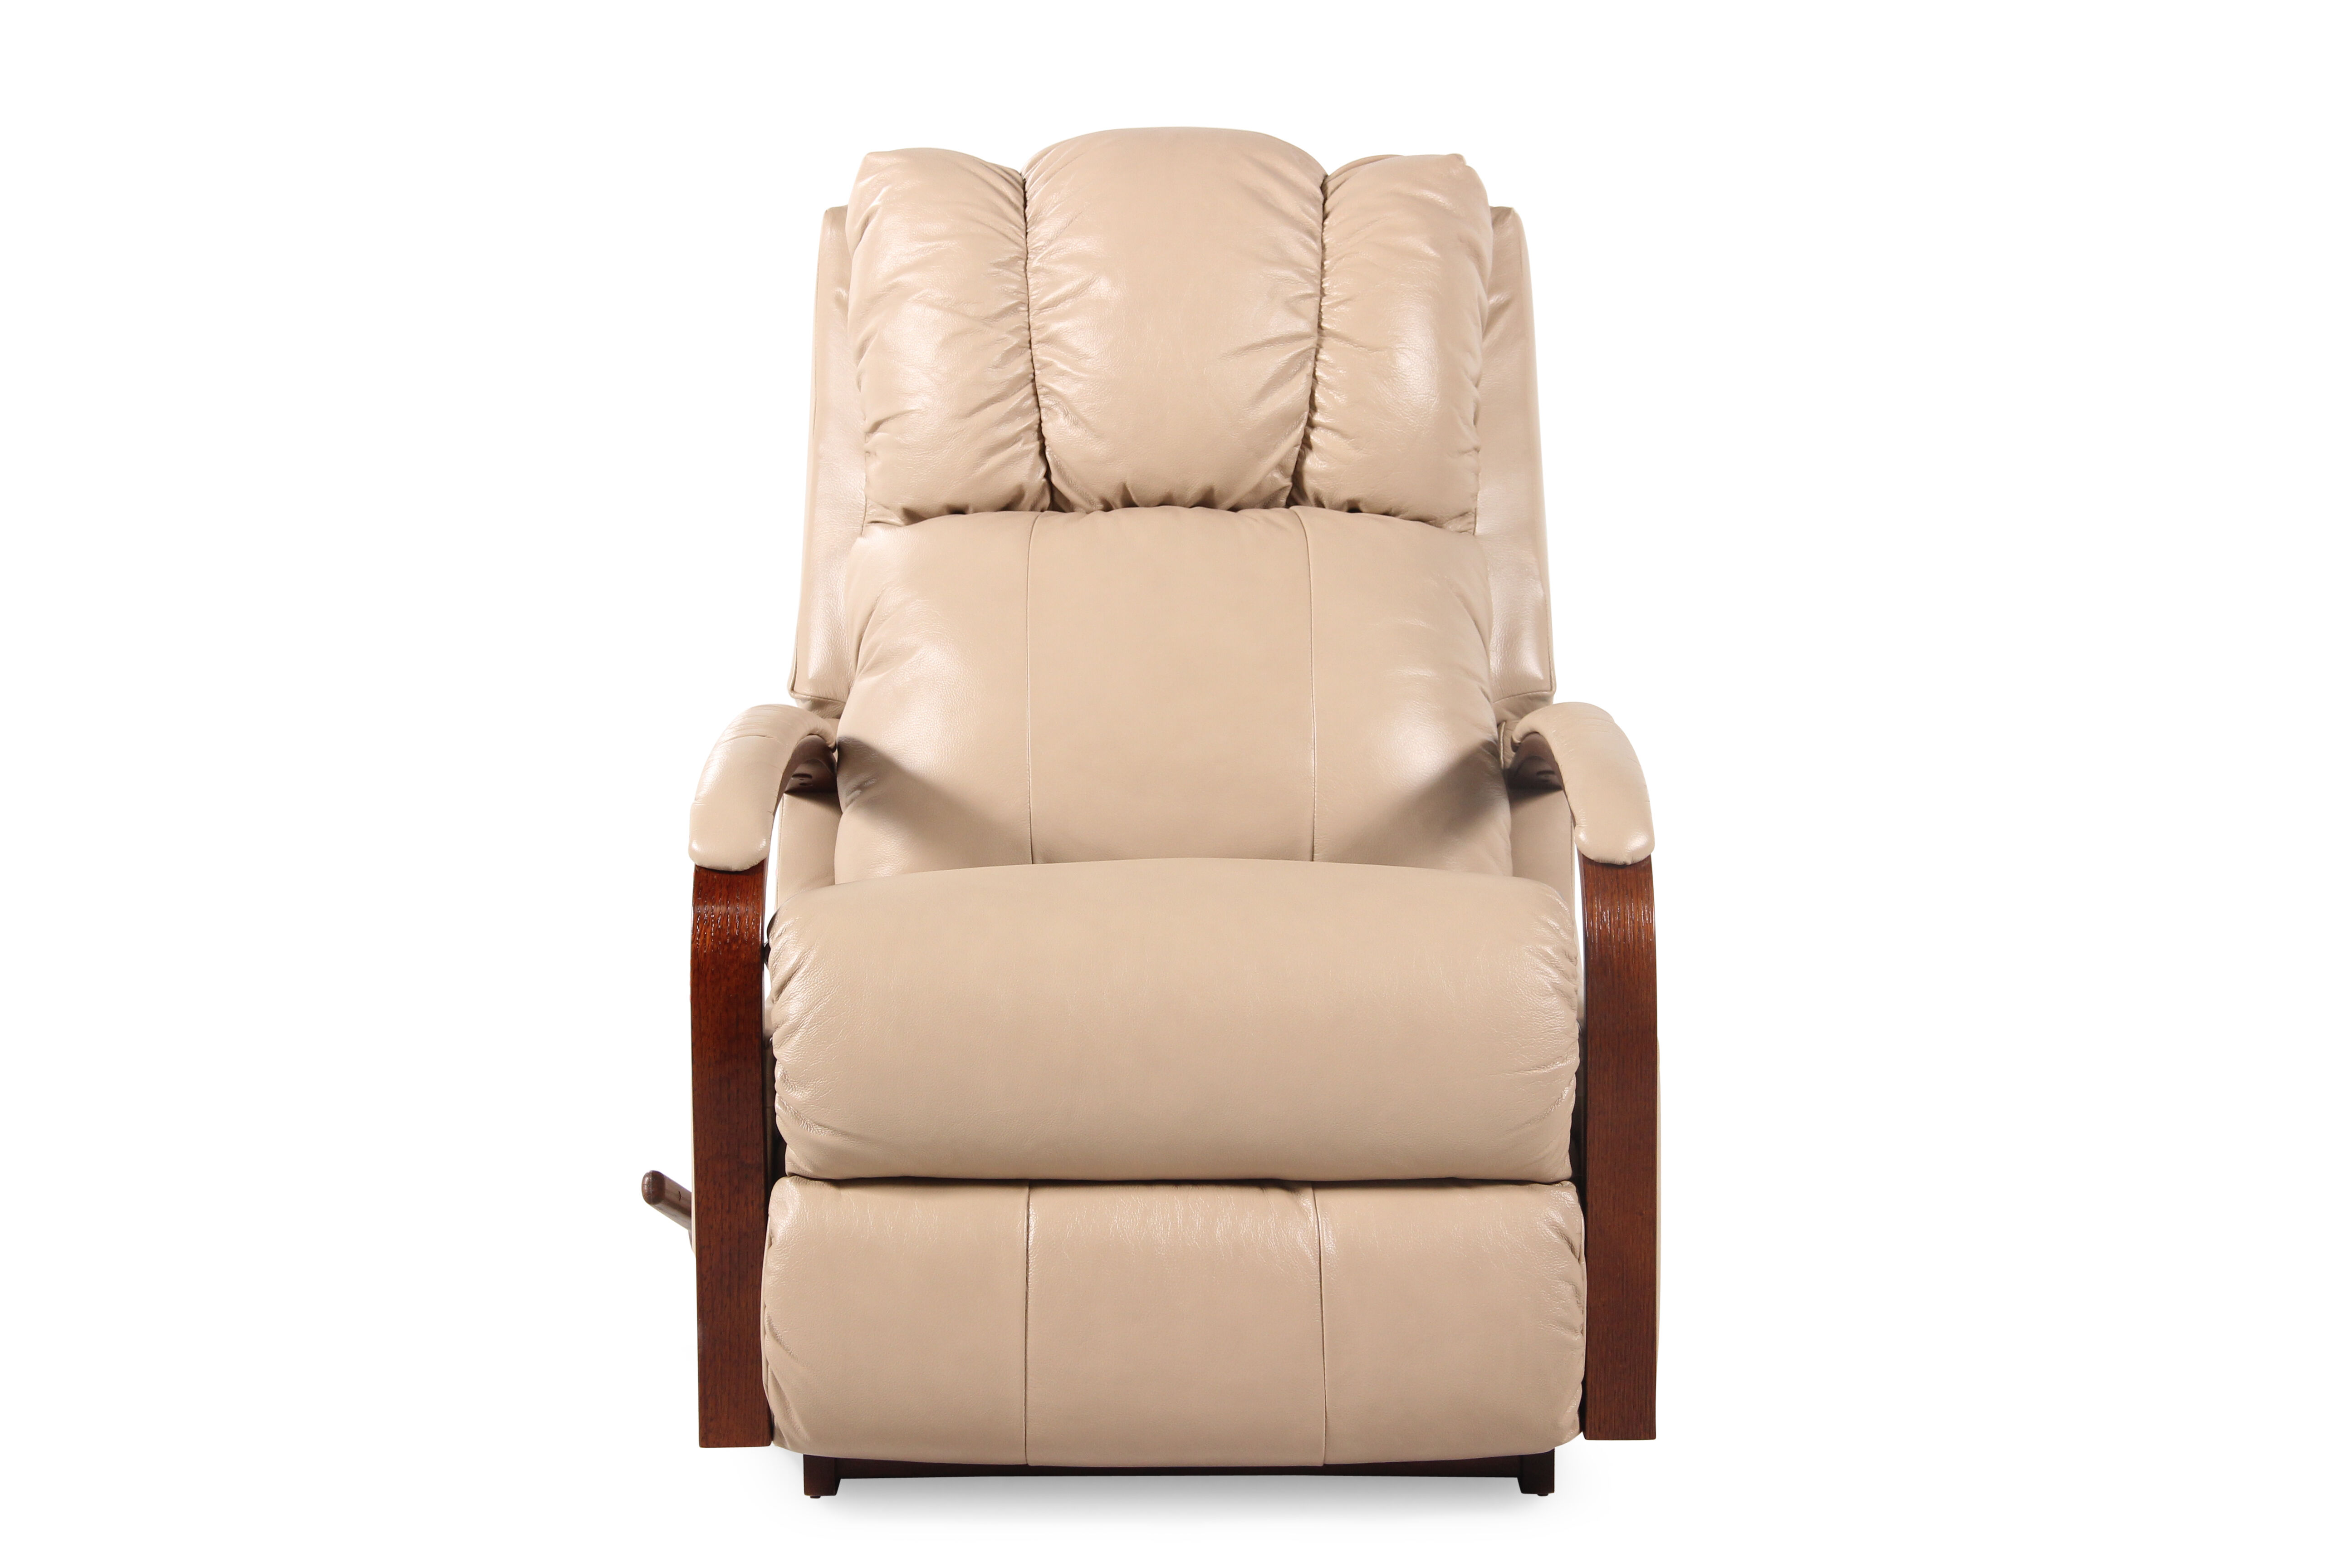 La-Z-Boy Harbor Town Rocker Recliner  sc 1 st  Mathis Brothers & La-Z-Boy Harbor Town Rocker Recliner | Mathis Brothers Furniture islam-shia.org